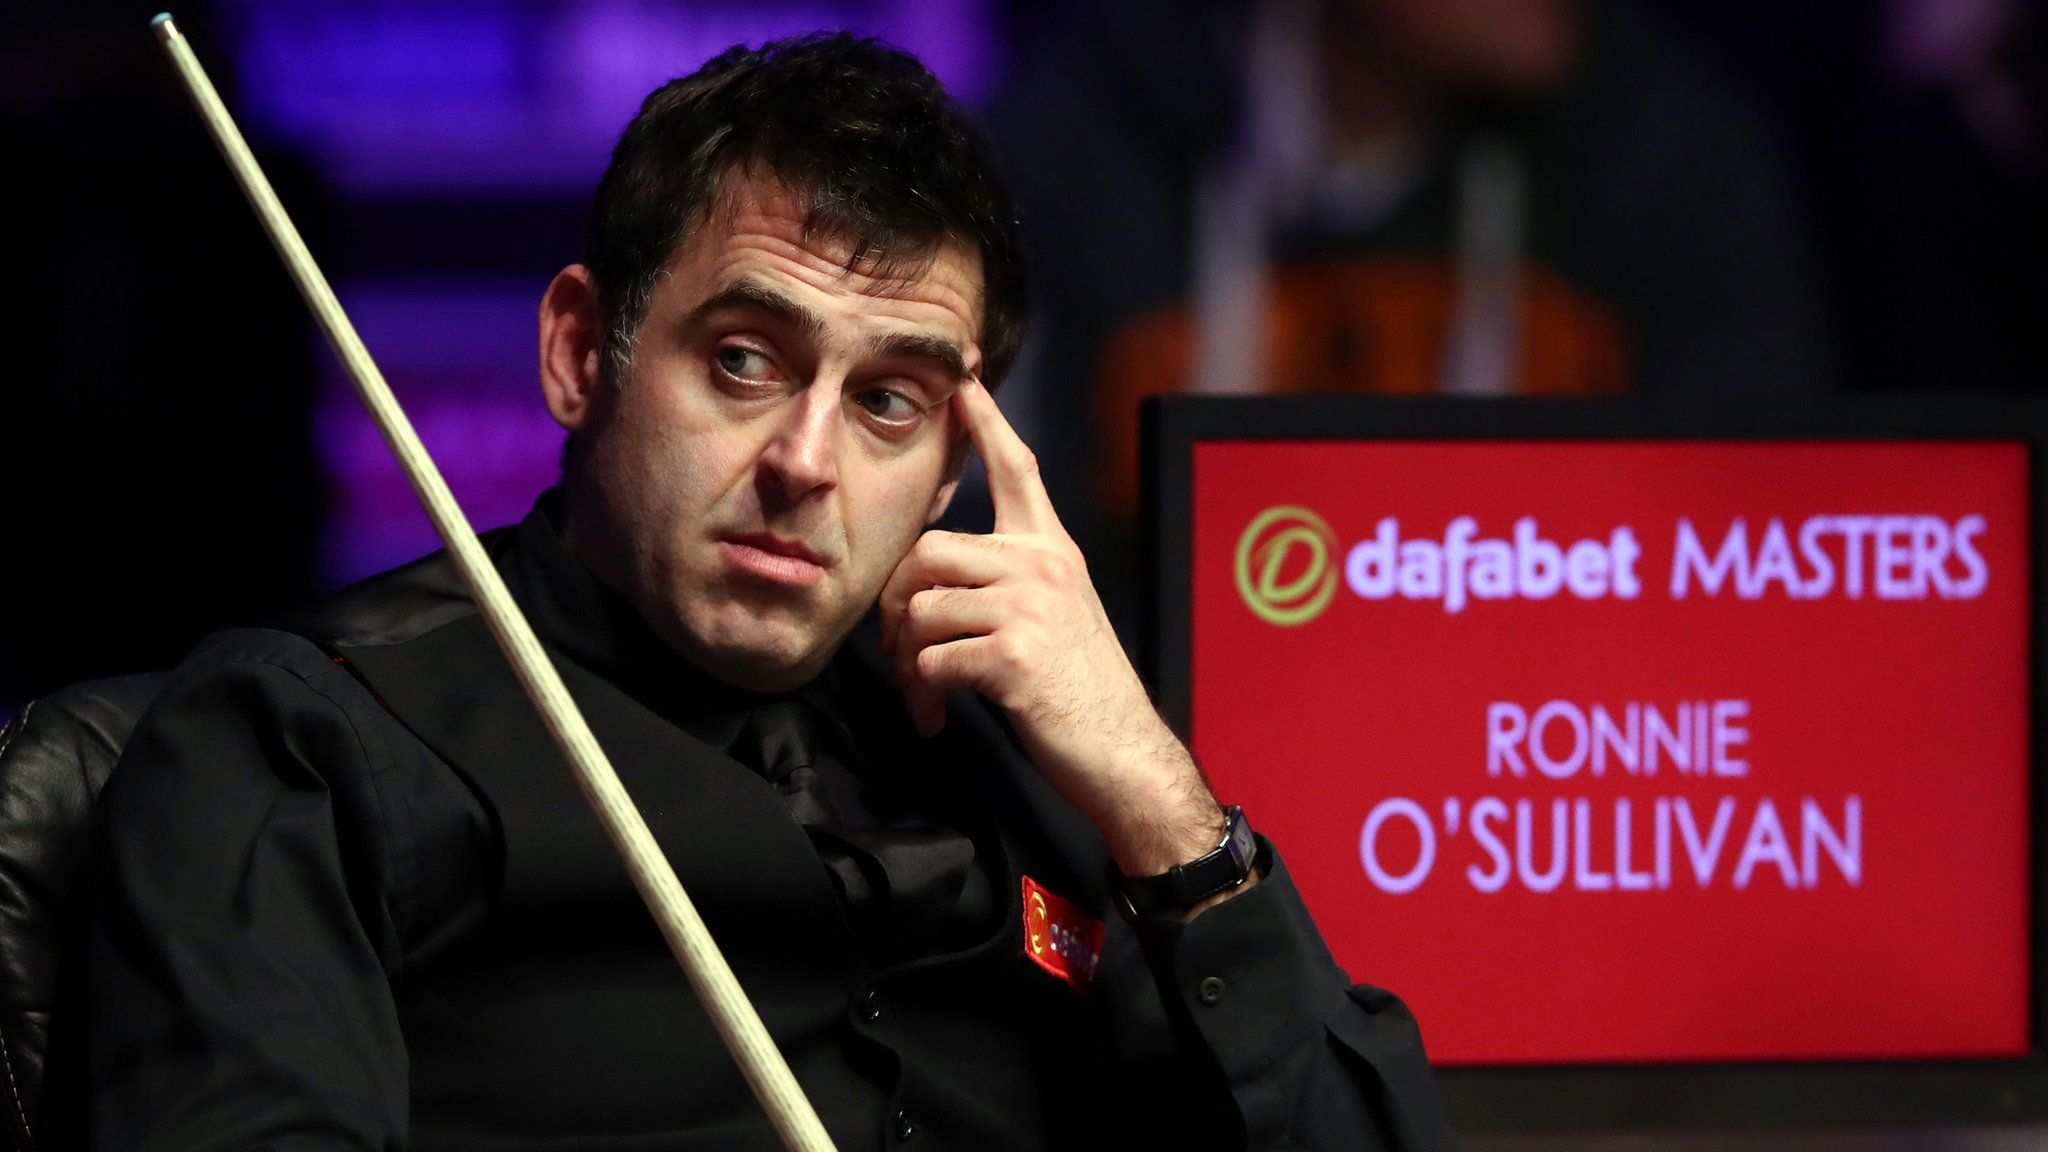 Defending champion O'Sullivan 'glad' to be out of Masters